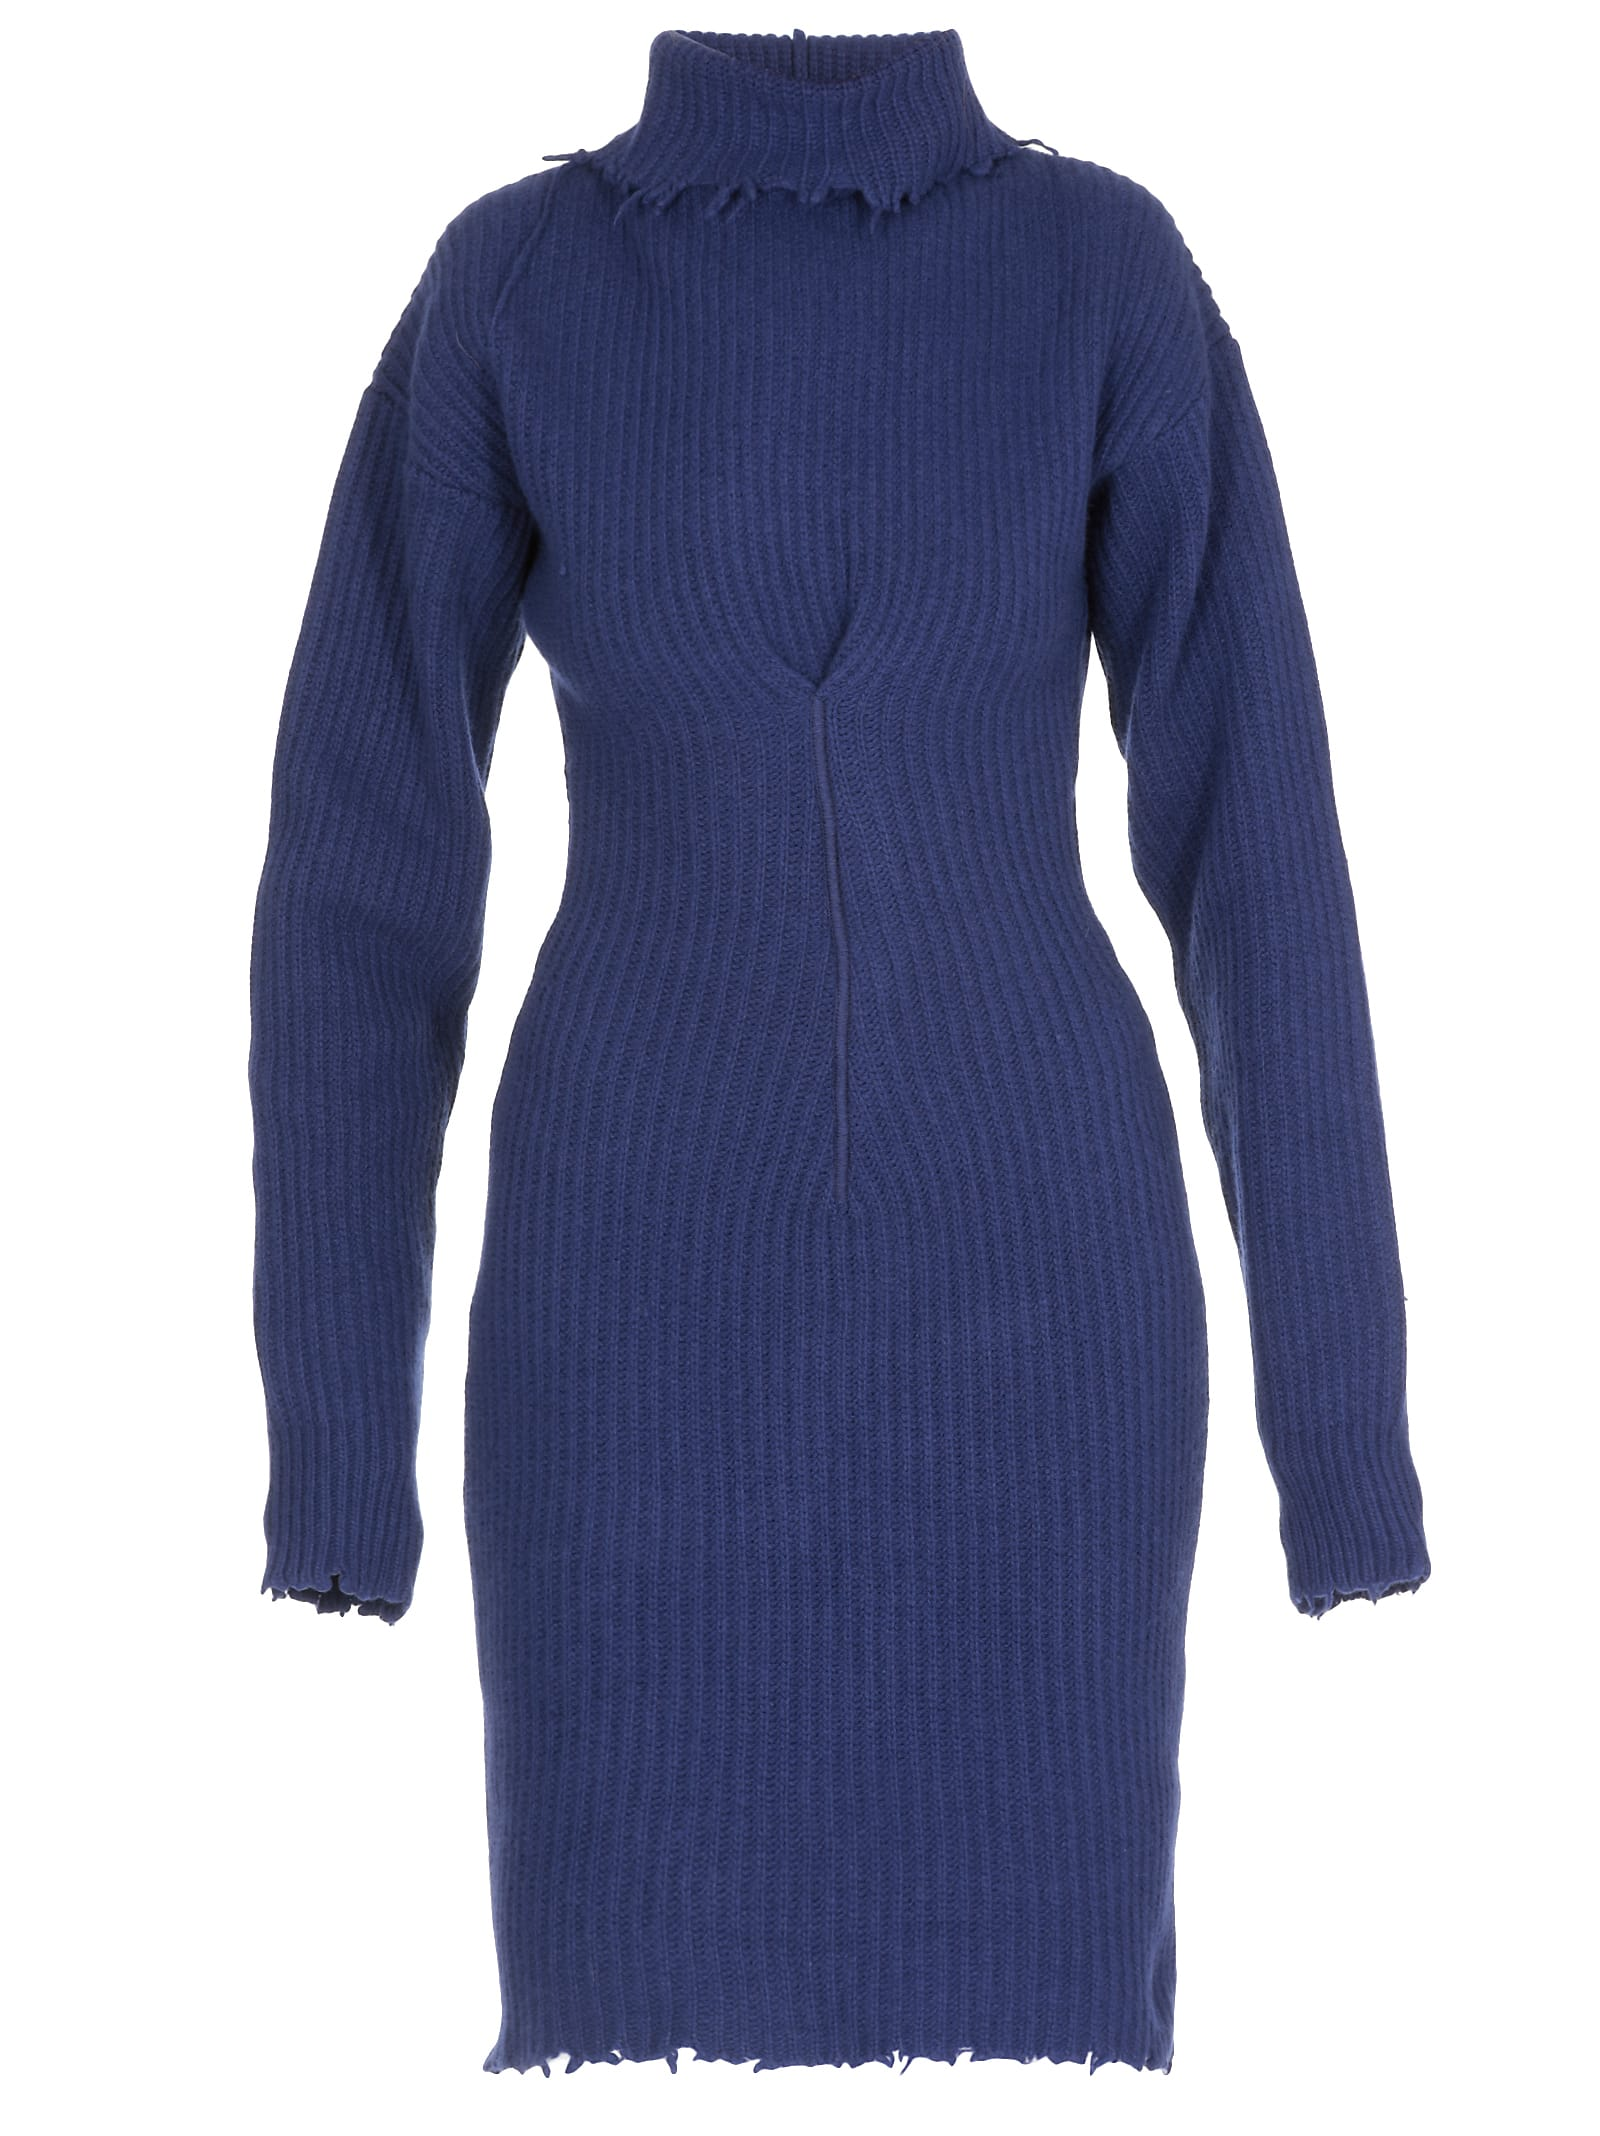 Ben Taverniti Unravel Project Ribbed Dress